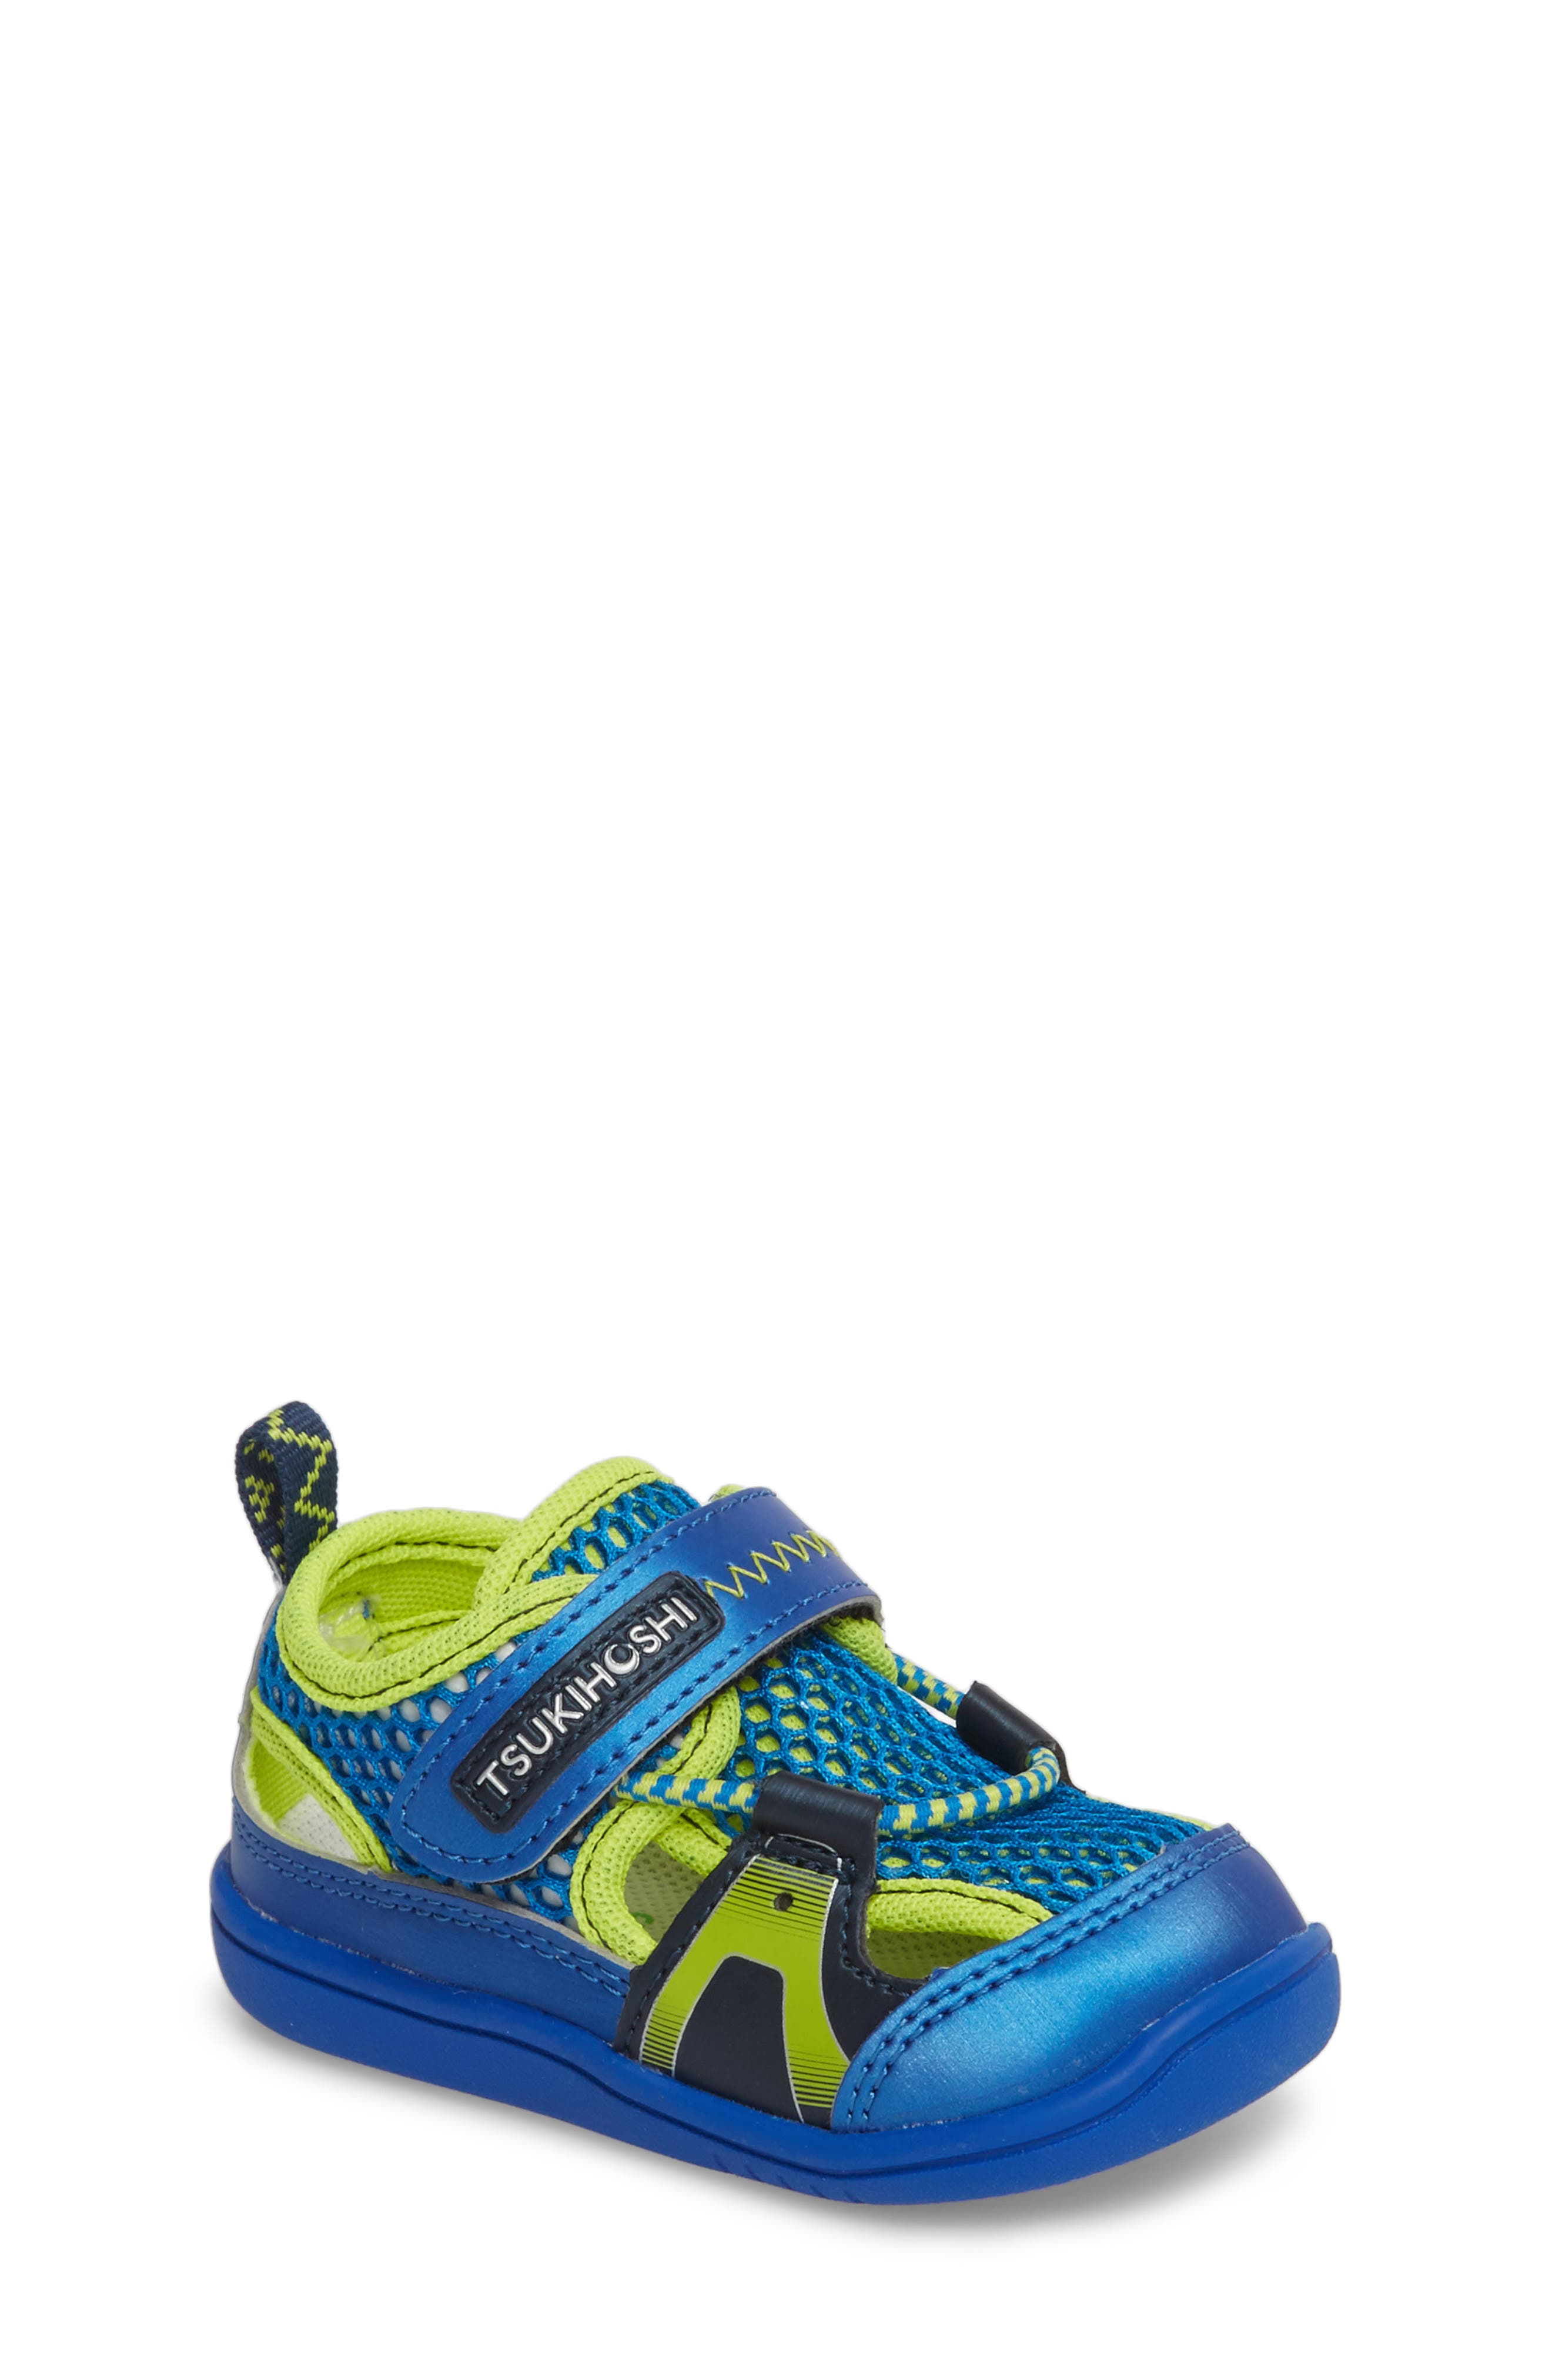 Ibiza Washable Sandal,                         Main,                         color, ROYAL/ LIME